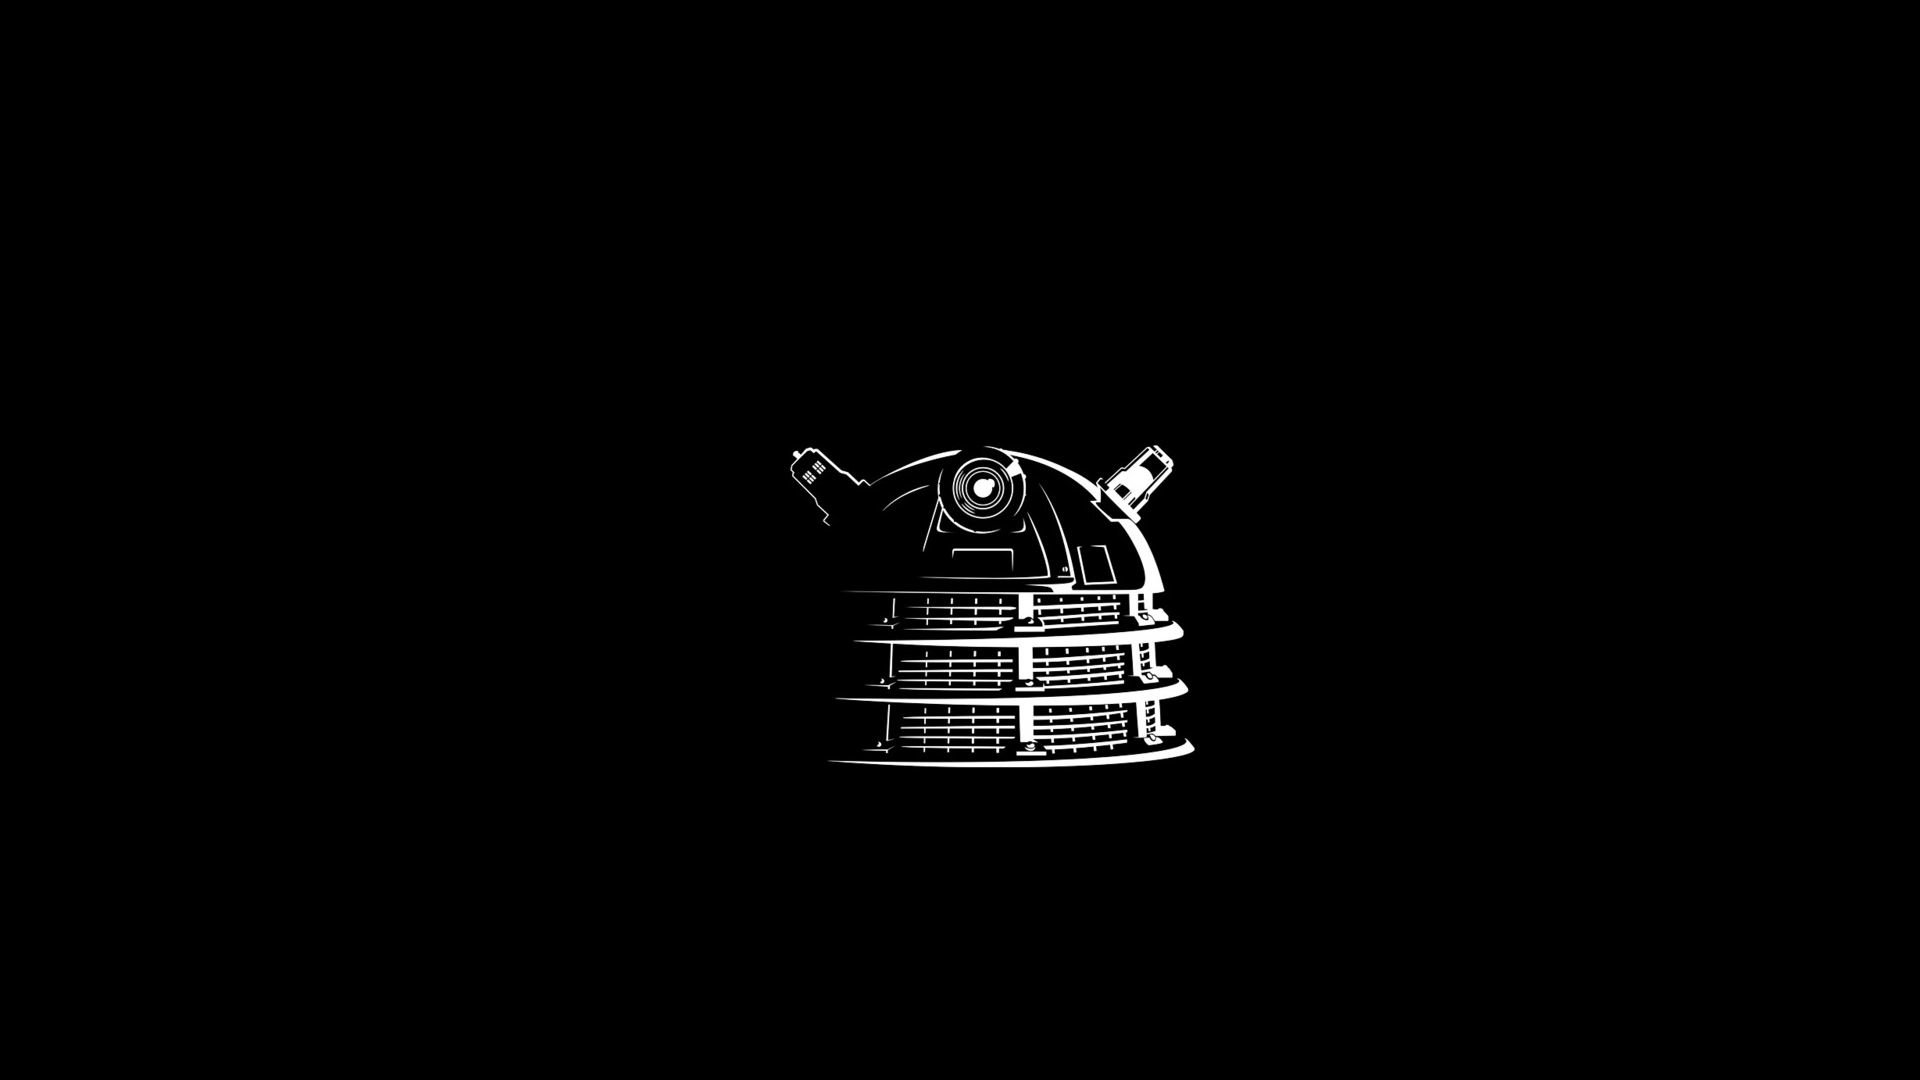 Download 1080p Doctor Who Computer Wallpaper Id95740 For Free